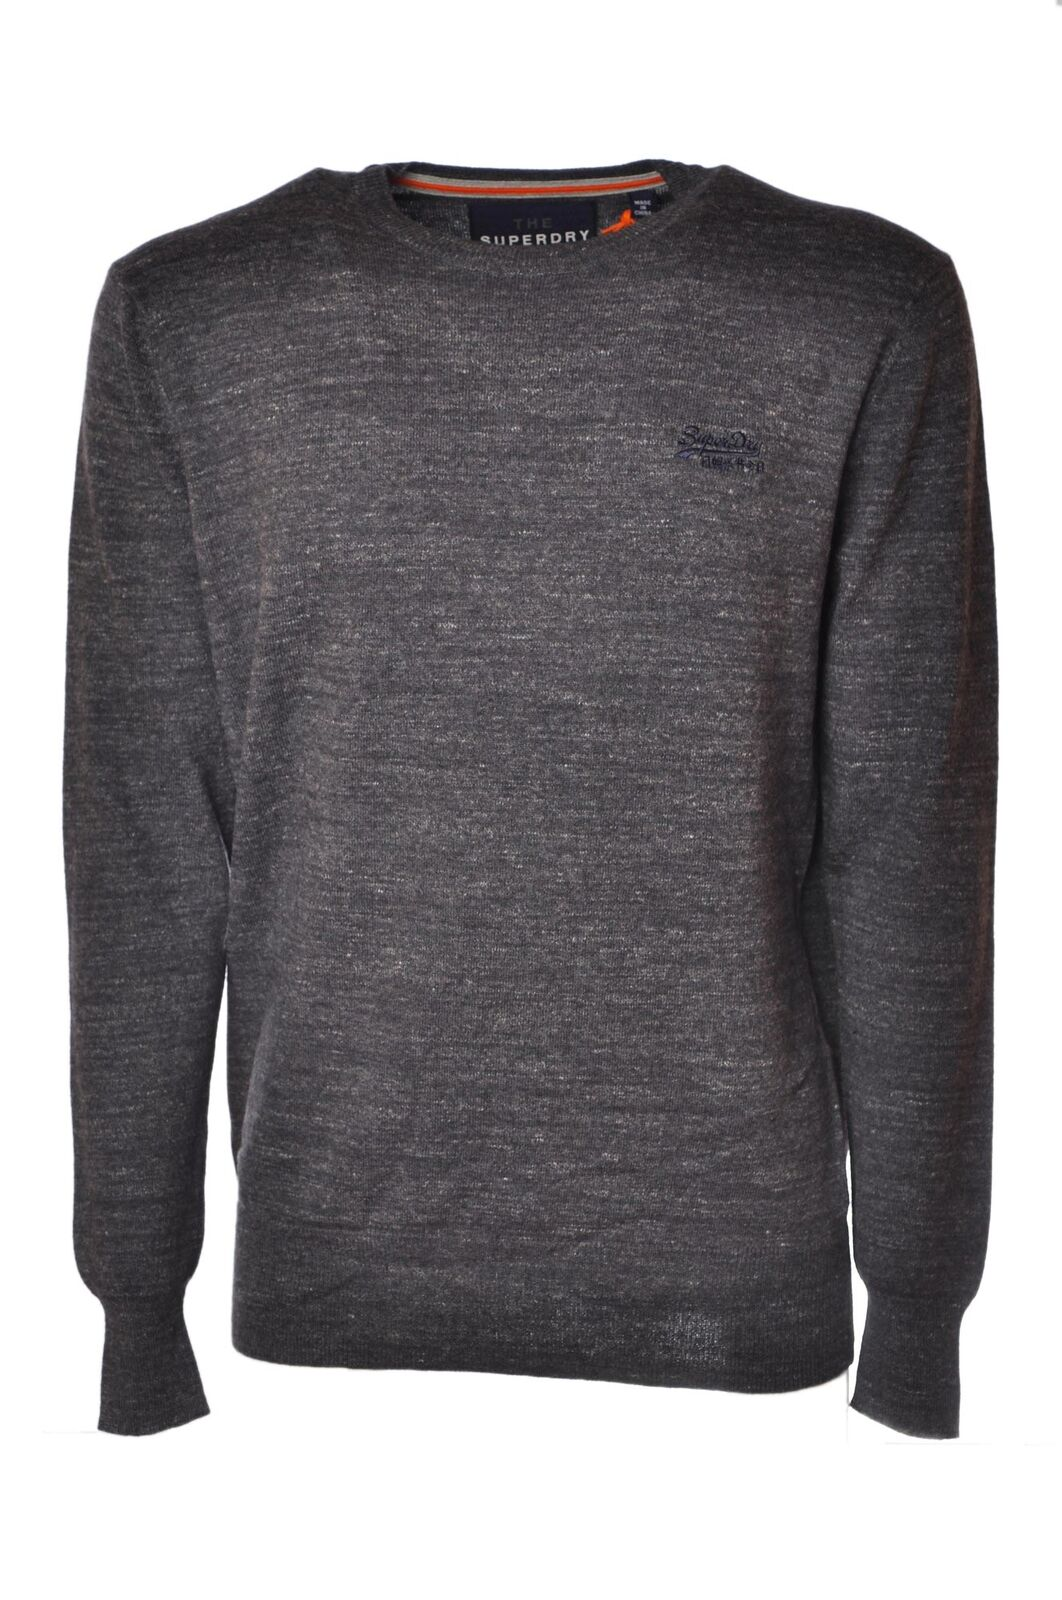 Superdry  -  Sweaters - Male - Grau - 4277126A183903